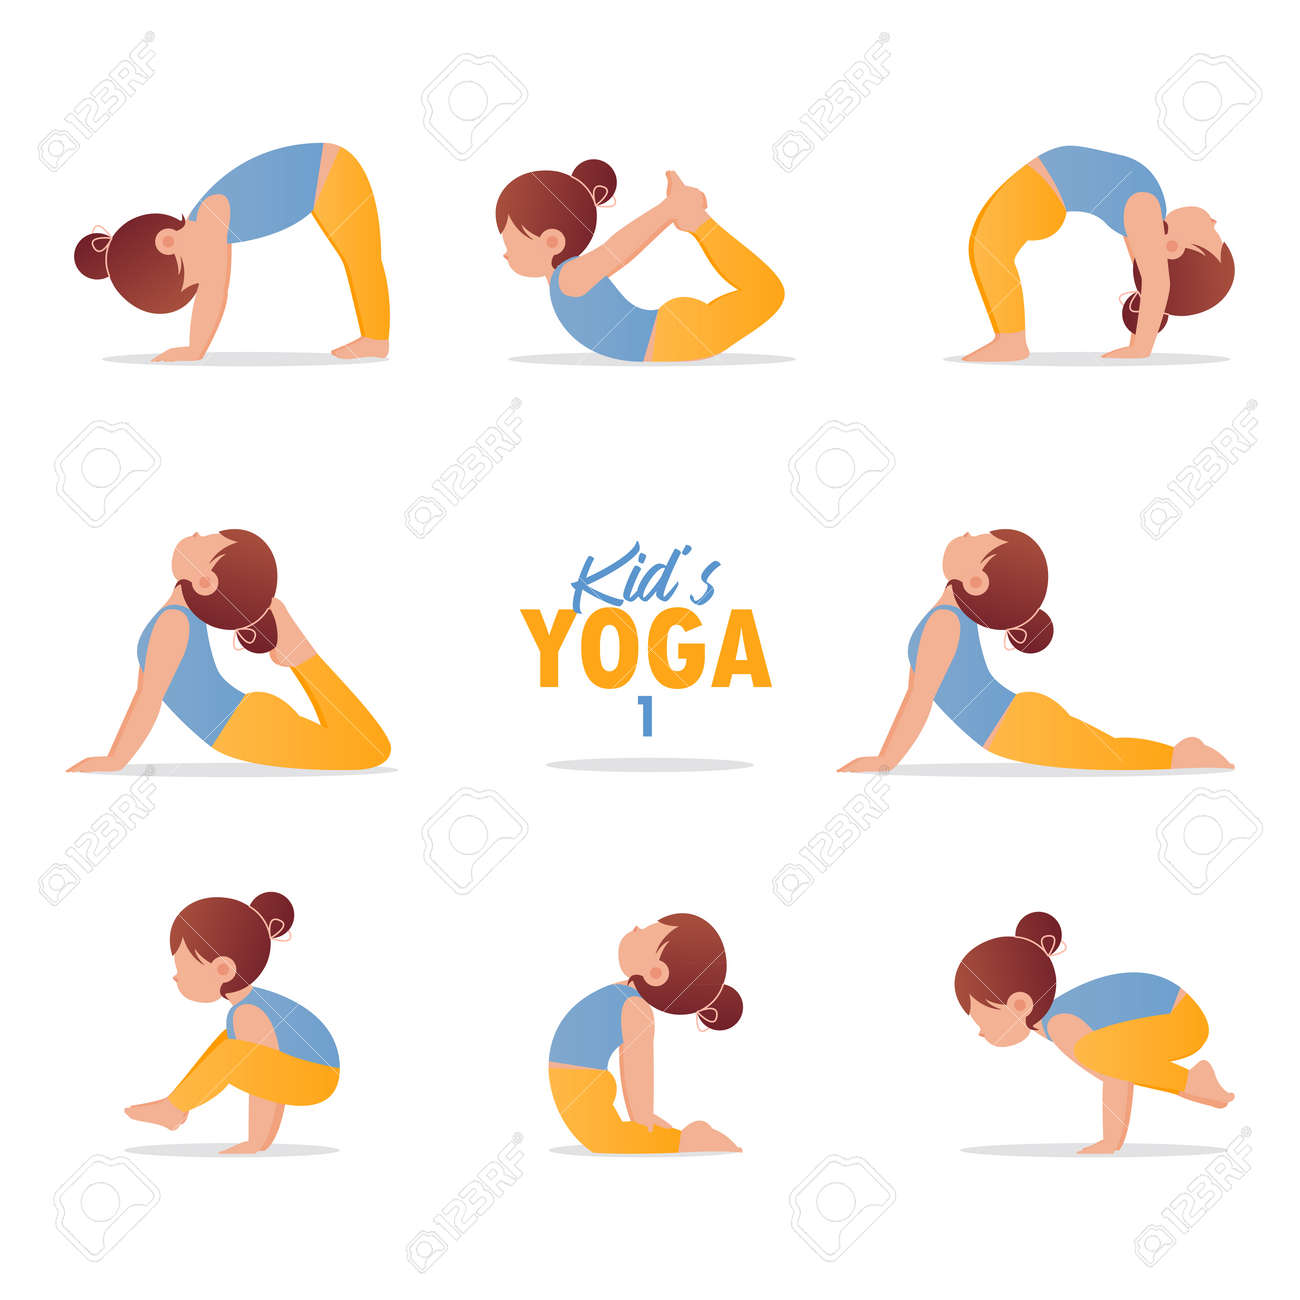 Kids Yoga Set Gymnastics For Children And Healthy Lifestyle Royalty Free Cliparts Vectors And Stock Illustration Image 138697429